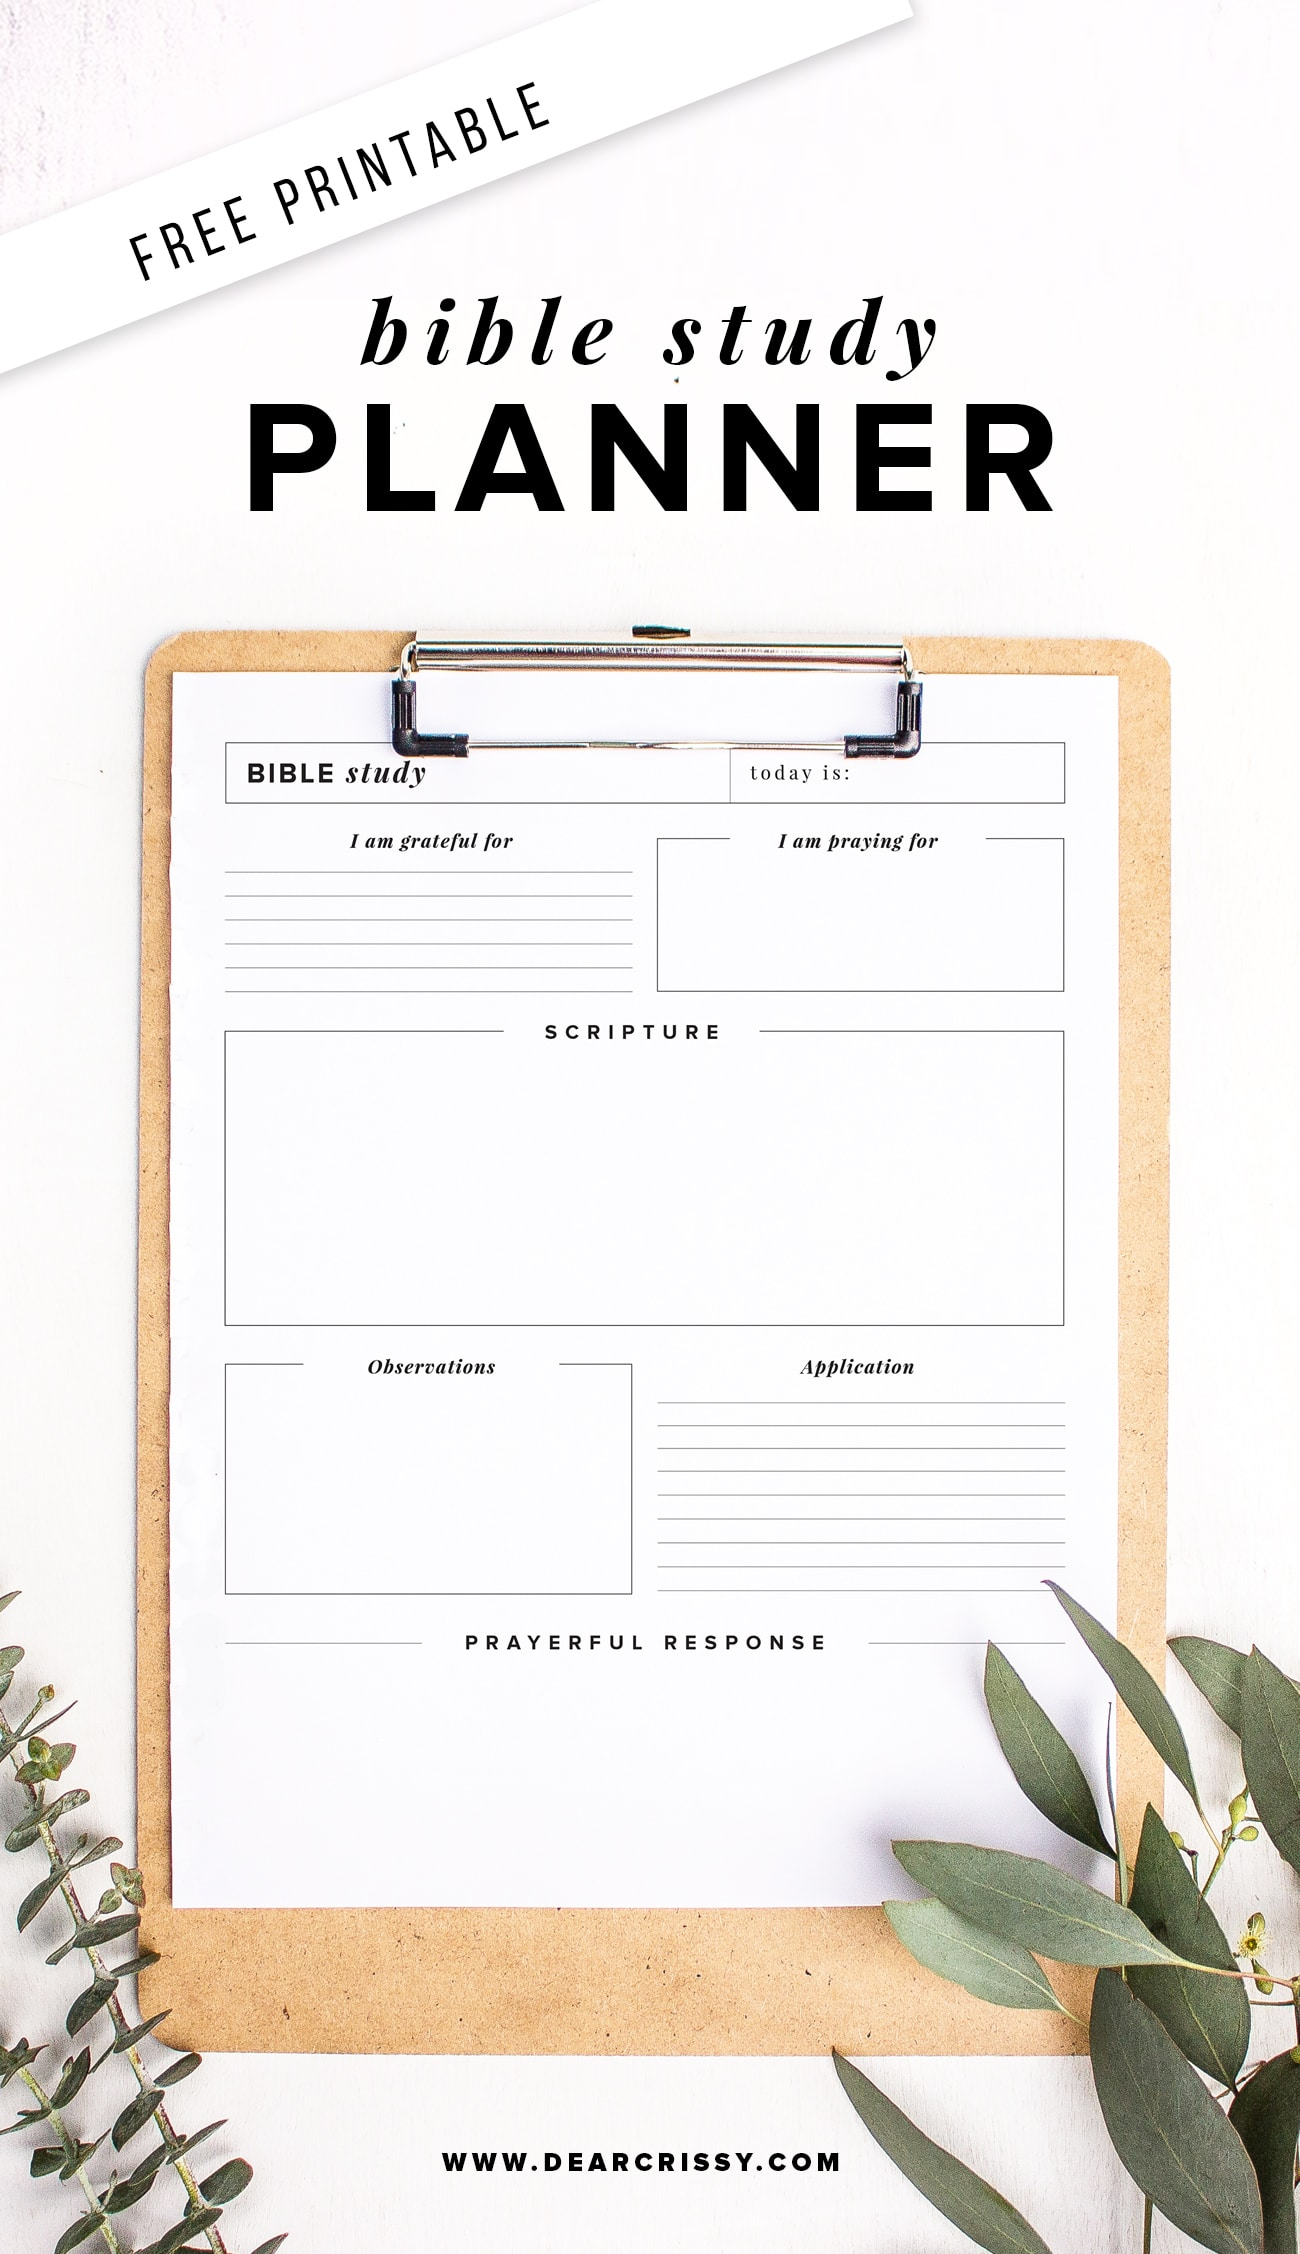 Free Printable Bible Study Planner - Soap Method Bible Study Worksheet!   Free Printable Bible Study Worksheets For Adults